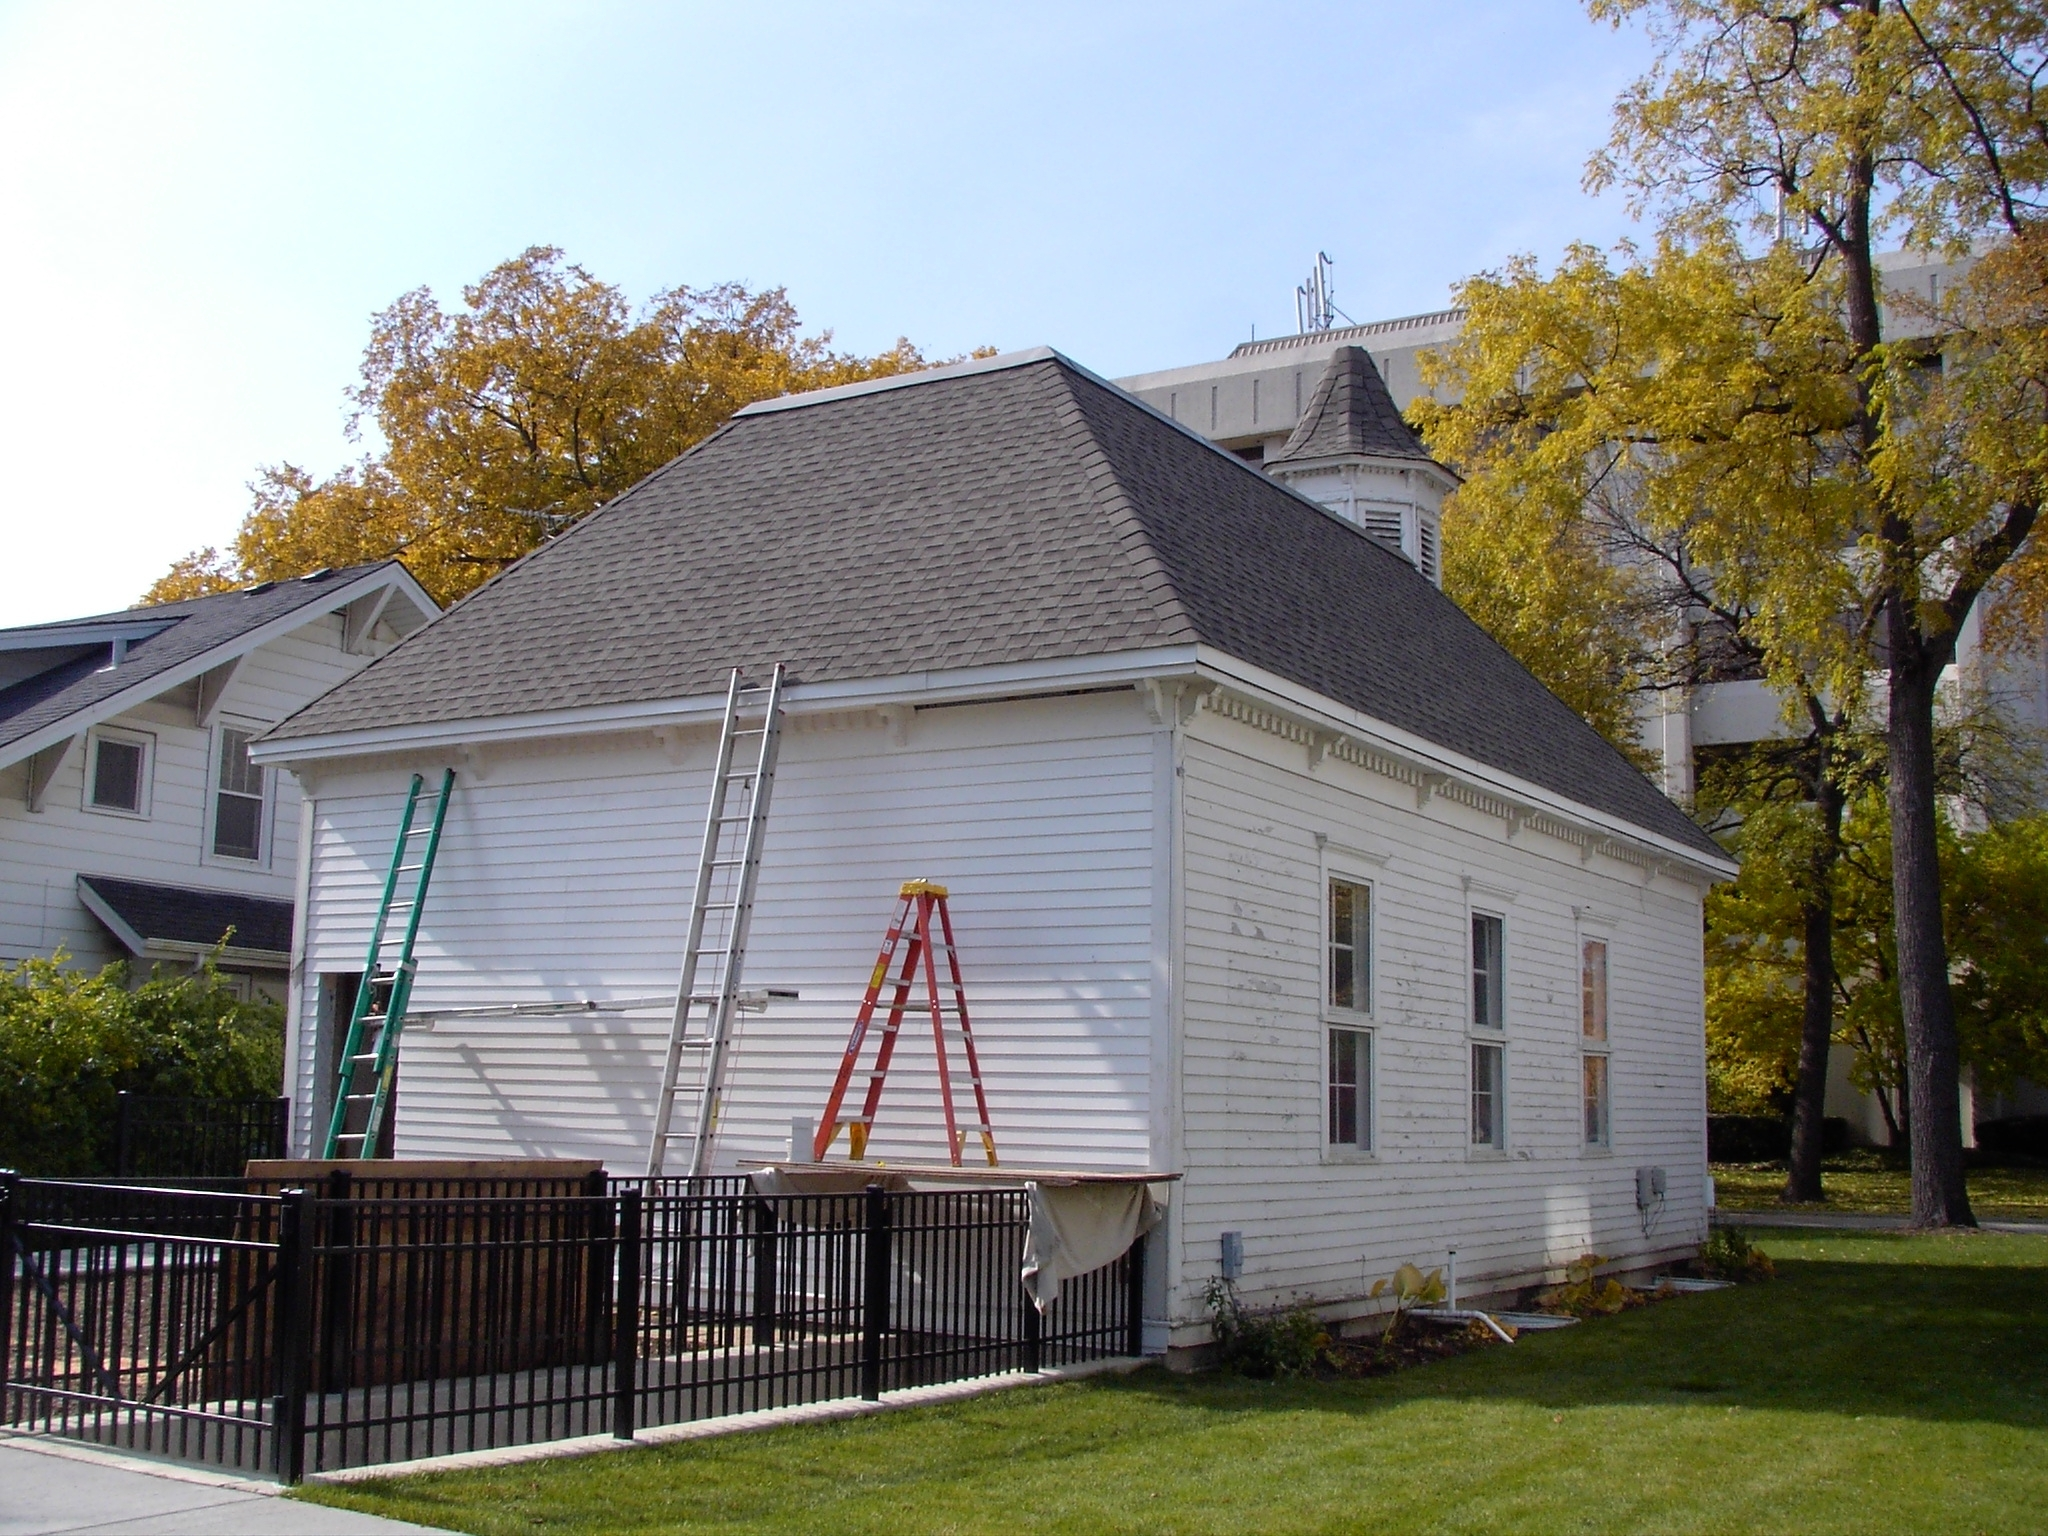 Central-School-exterior-restoration-Fall-2009-photo-by-Greg-Peerbolte1-1